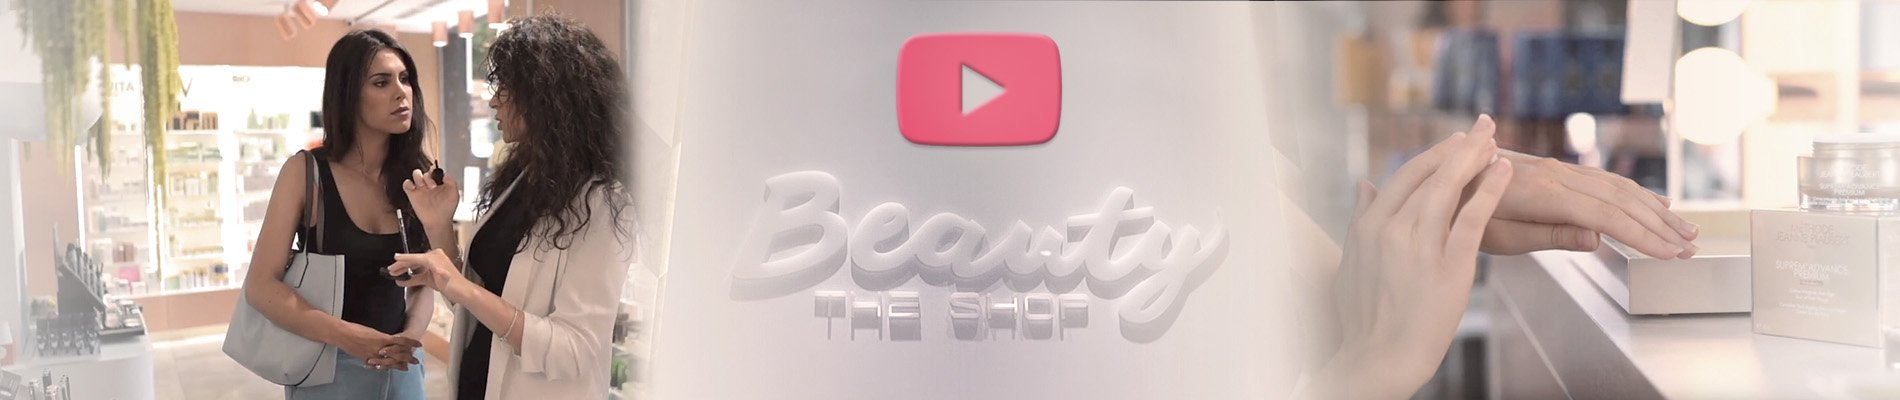 BeautyTheShop October 2019